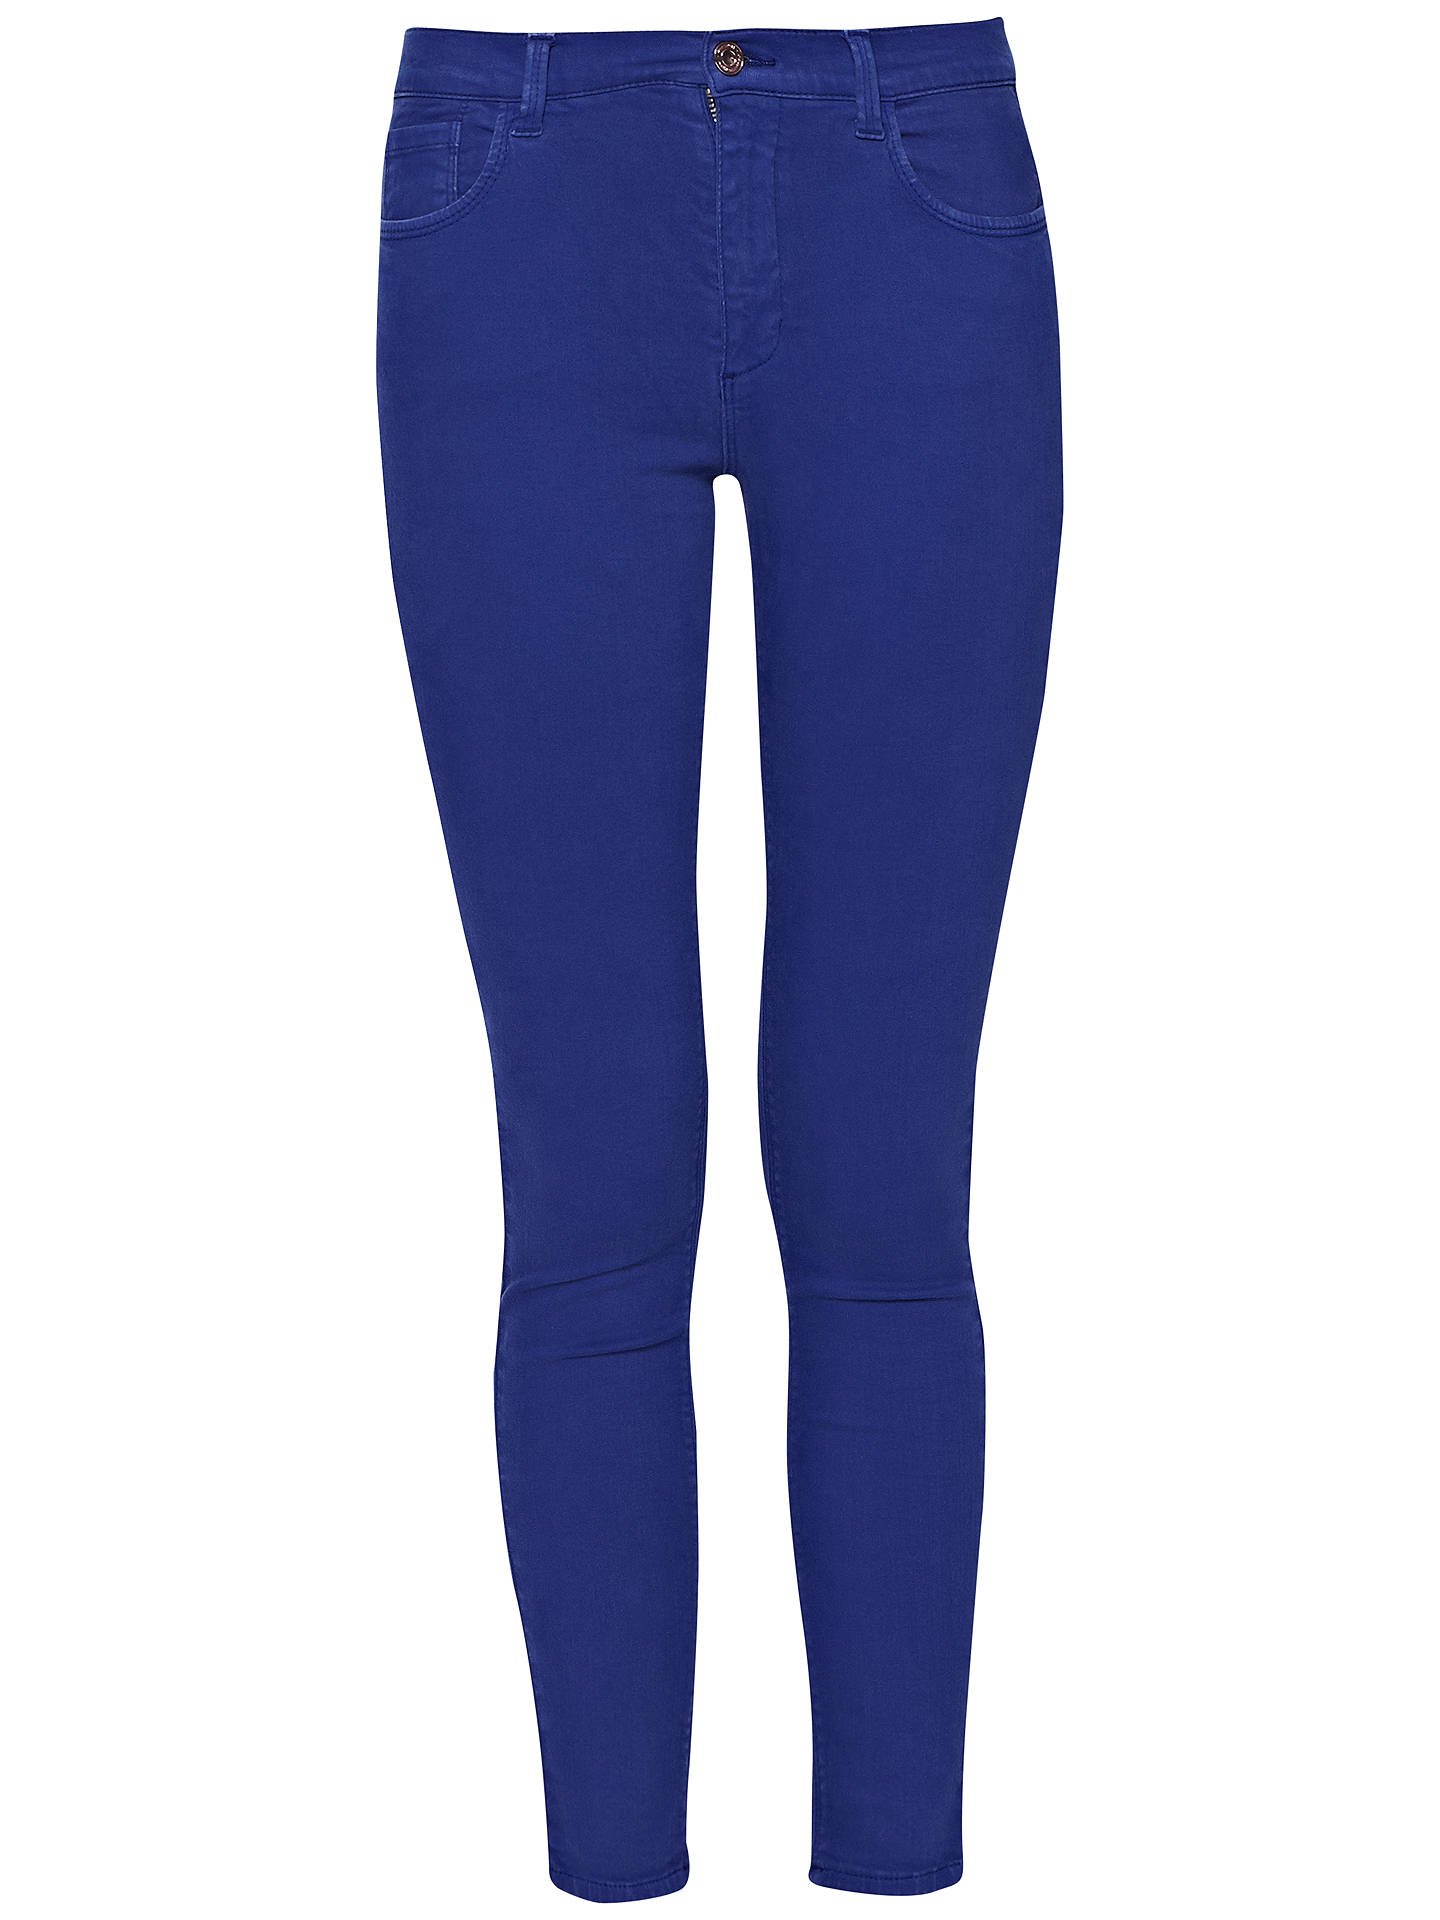 7a510982d3ce French Connection Coloured Denim Skinny Capri Jeans at John Lewis ...